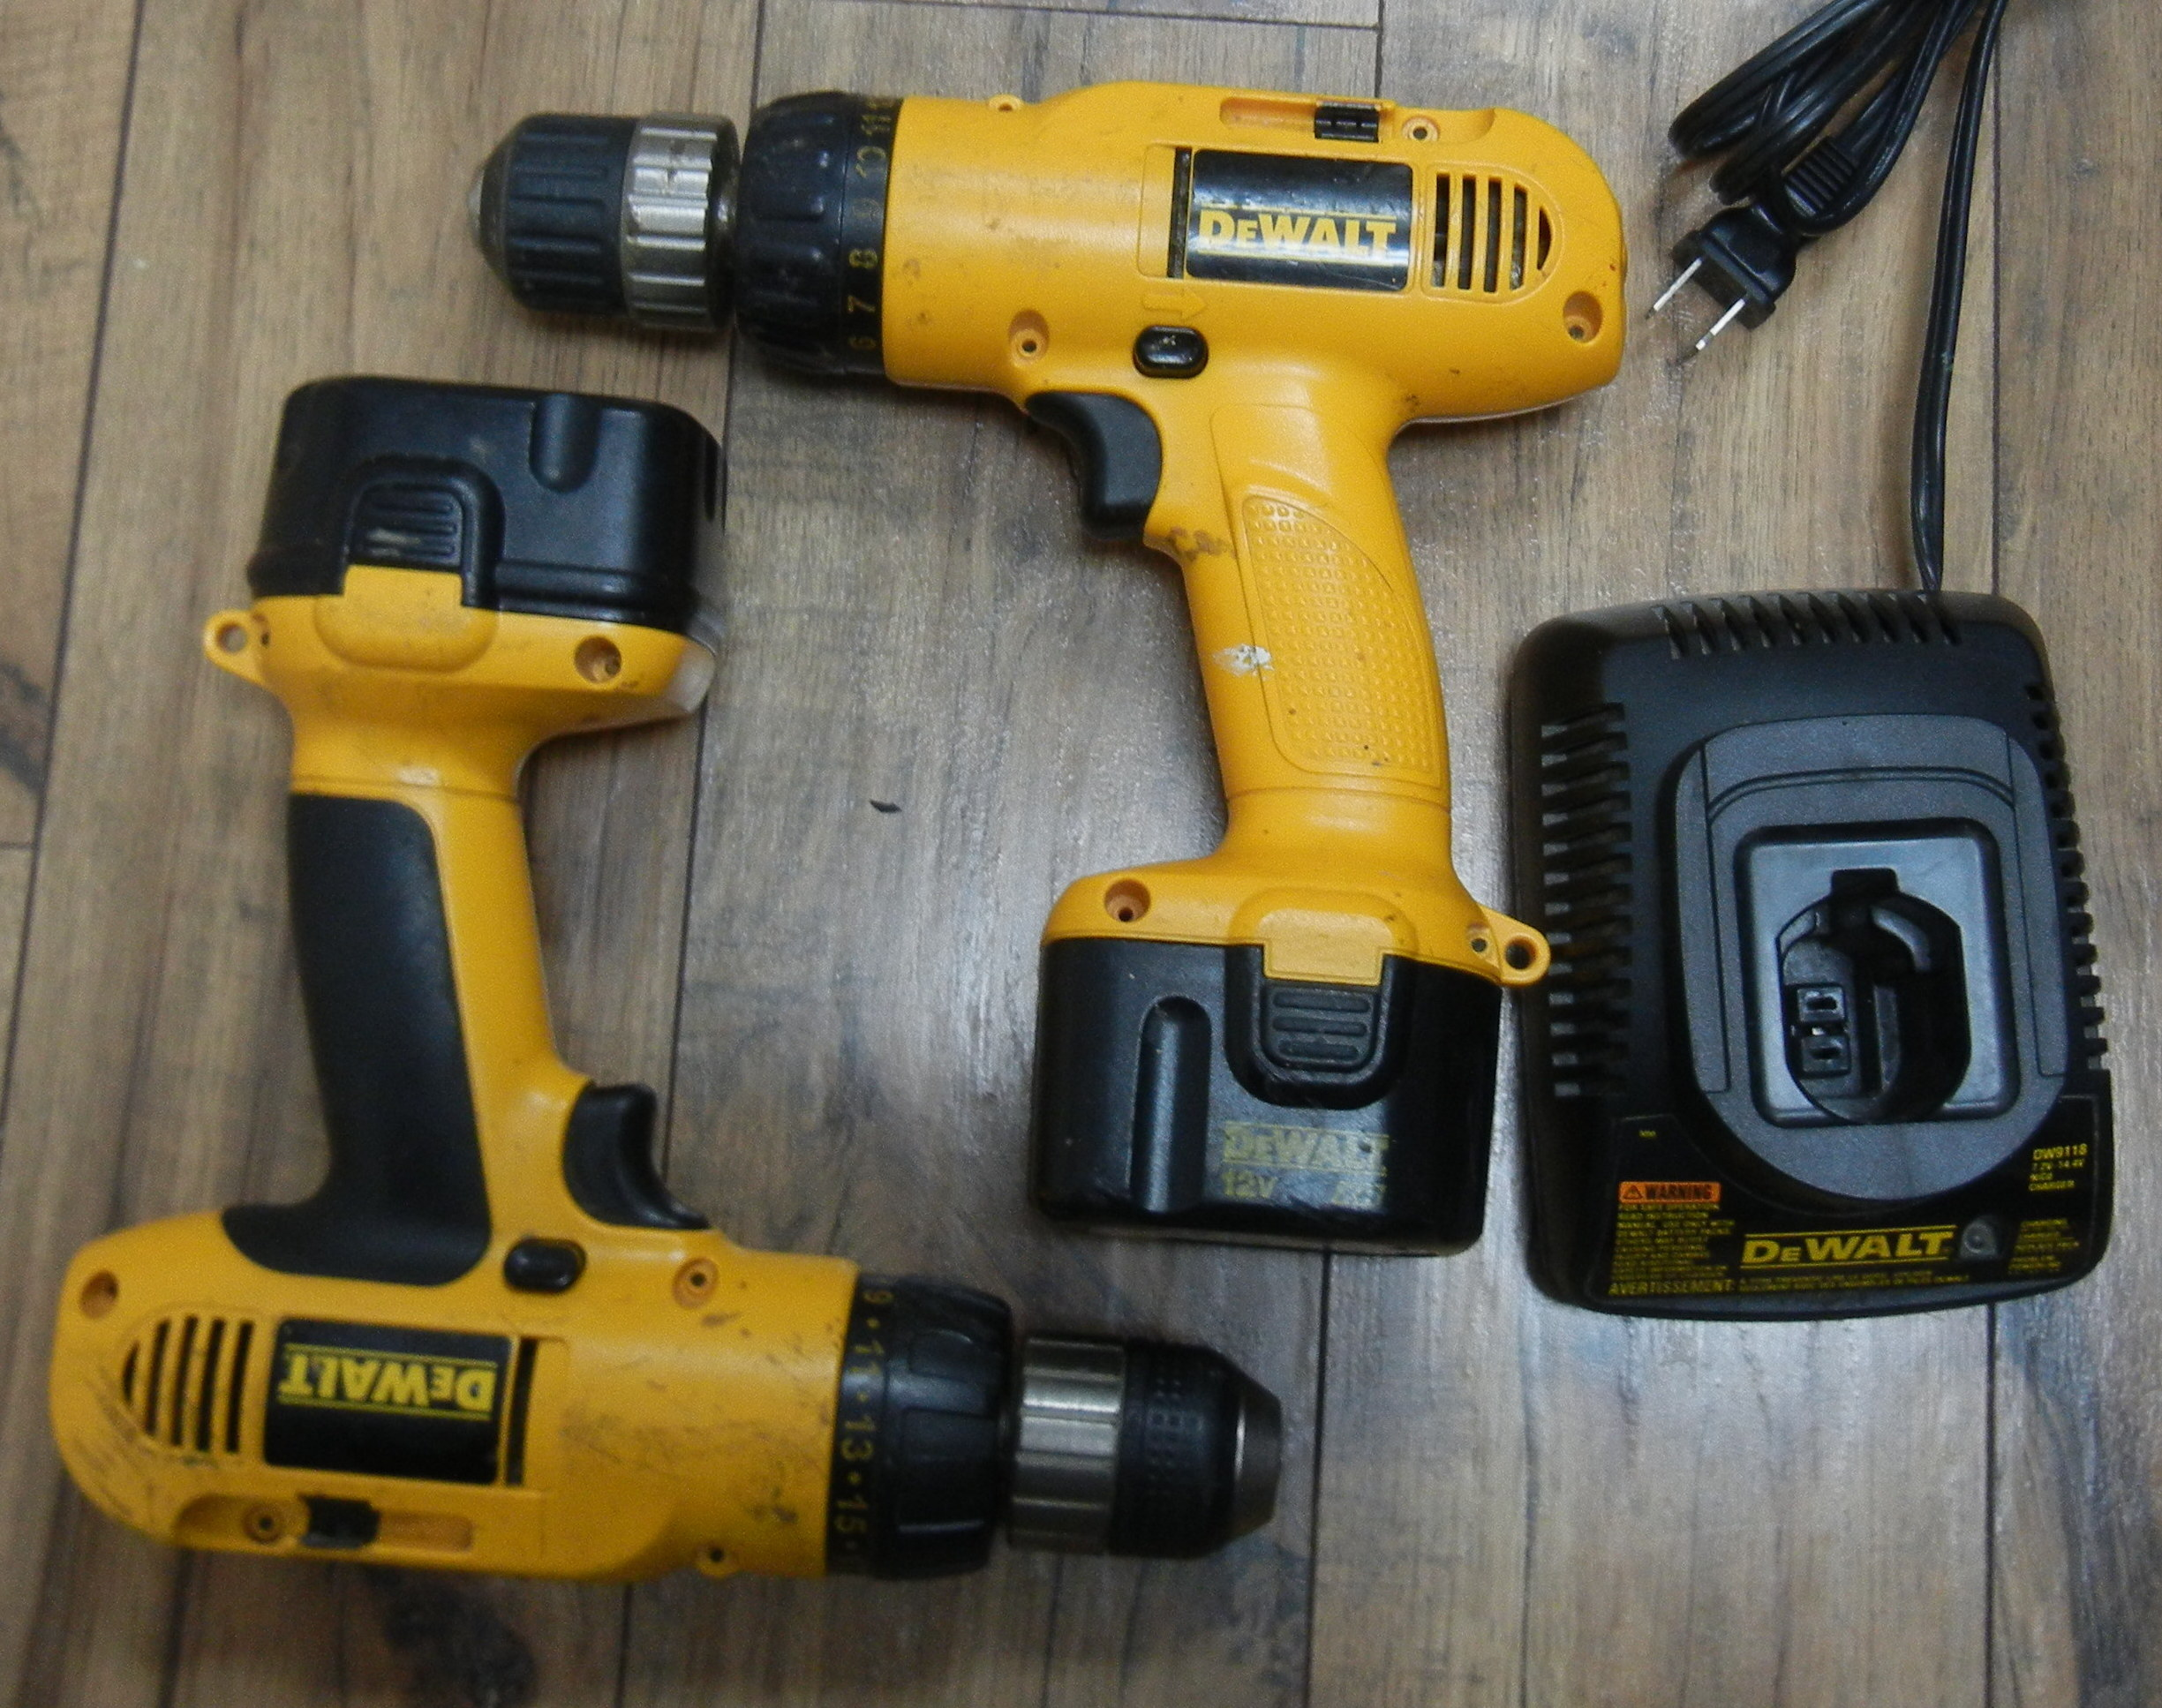 TWO DEWALT DW953 DRILLS WITH CHARGER